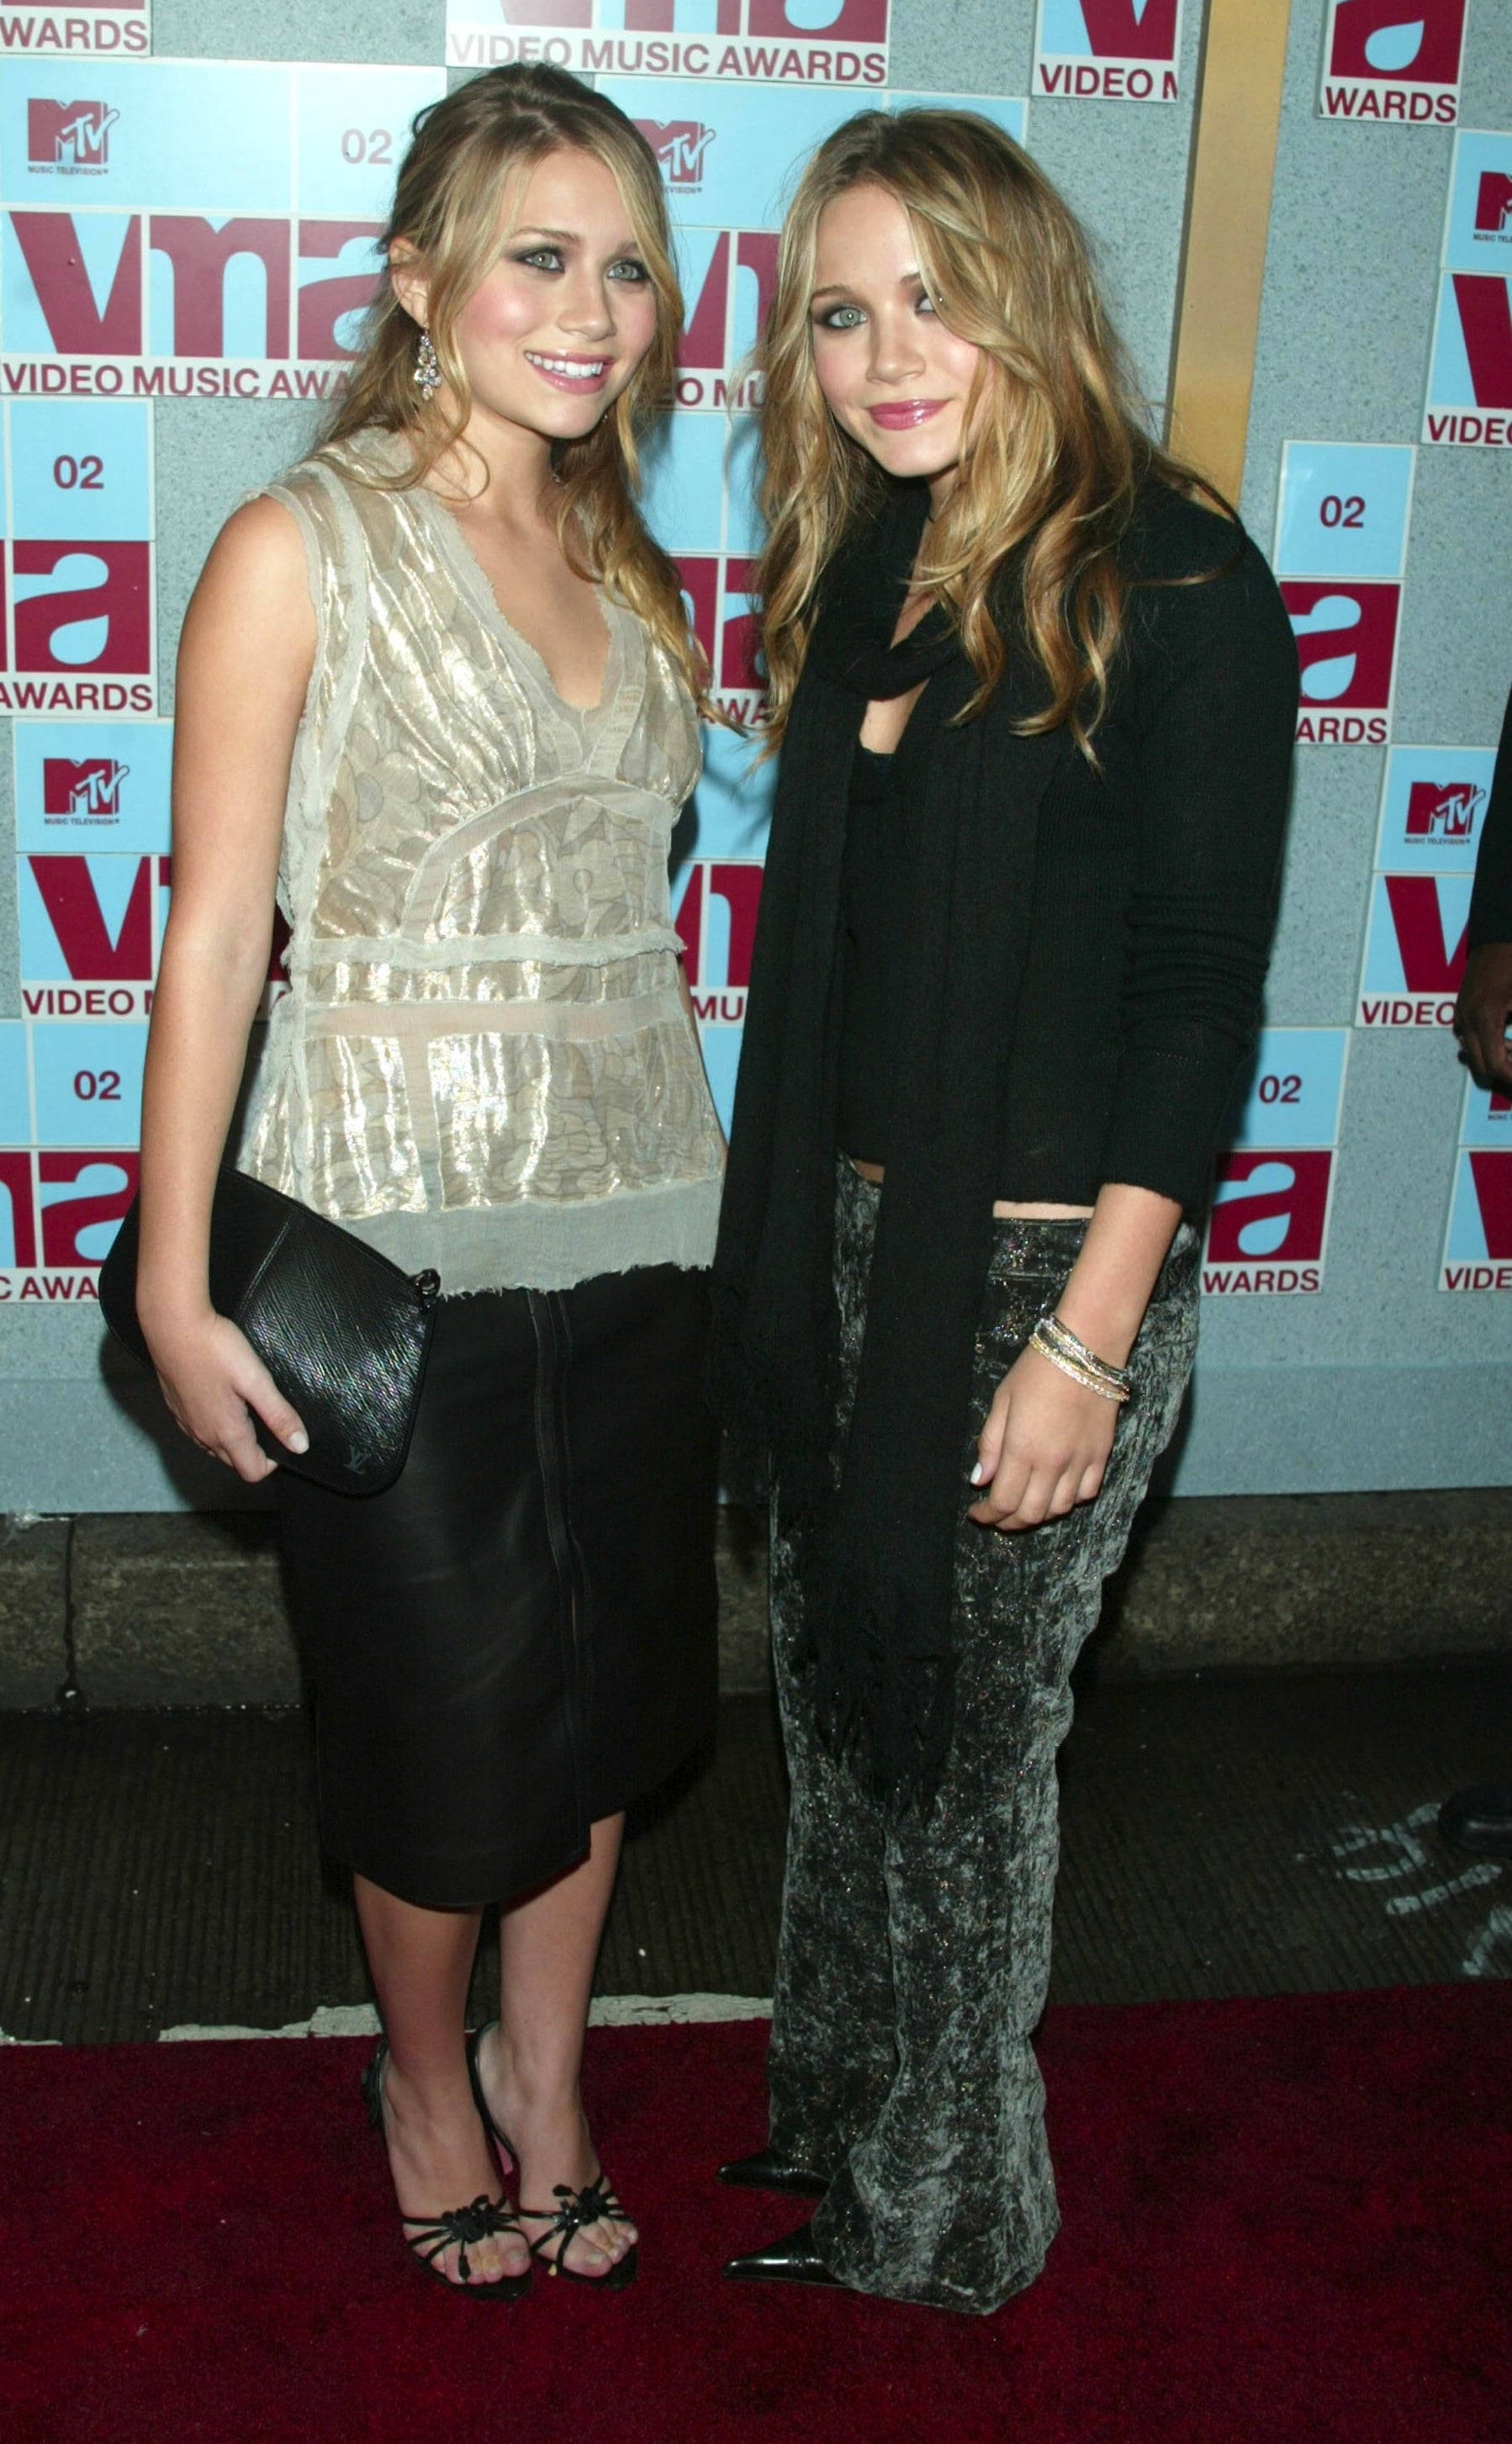 Twinning combo: At the 2002 MTV VMAs, the Olsens partied the night away in age-appropriate ensembles.  Ashley tempered her leather pencil skirt with an iridescent blouse and black sandals. Mary-Kate stood out in printed velour pants.